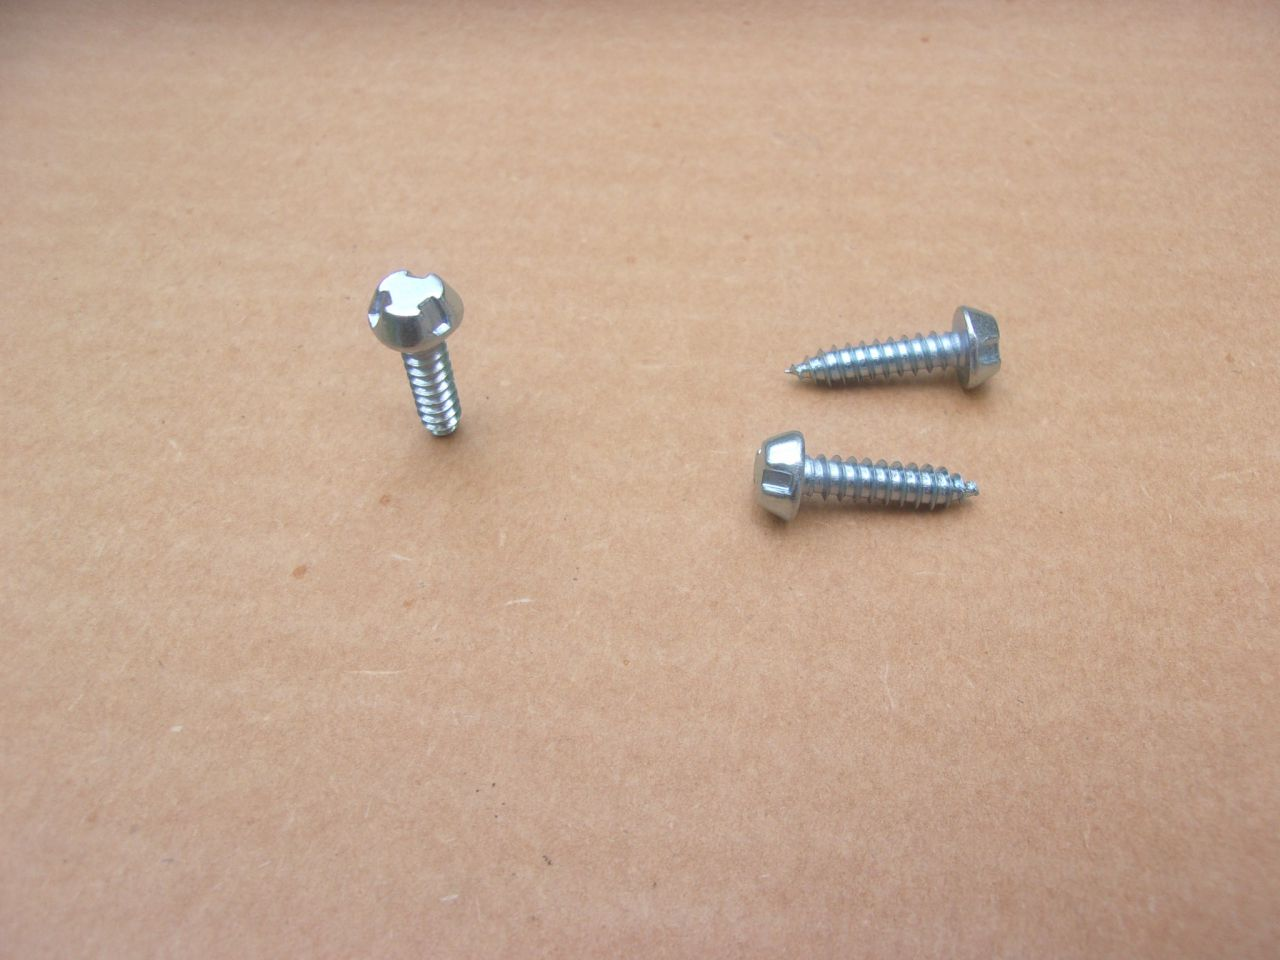 FLIP FUEL CAP SECURITY SCREWS 67-69 BARRACUDA, 68-70 CHARGER